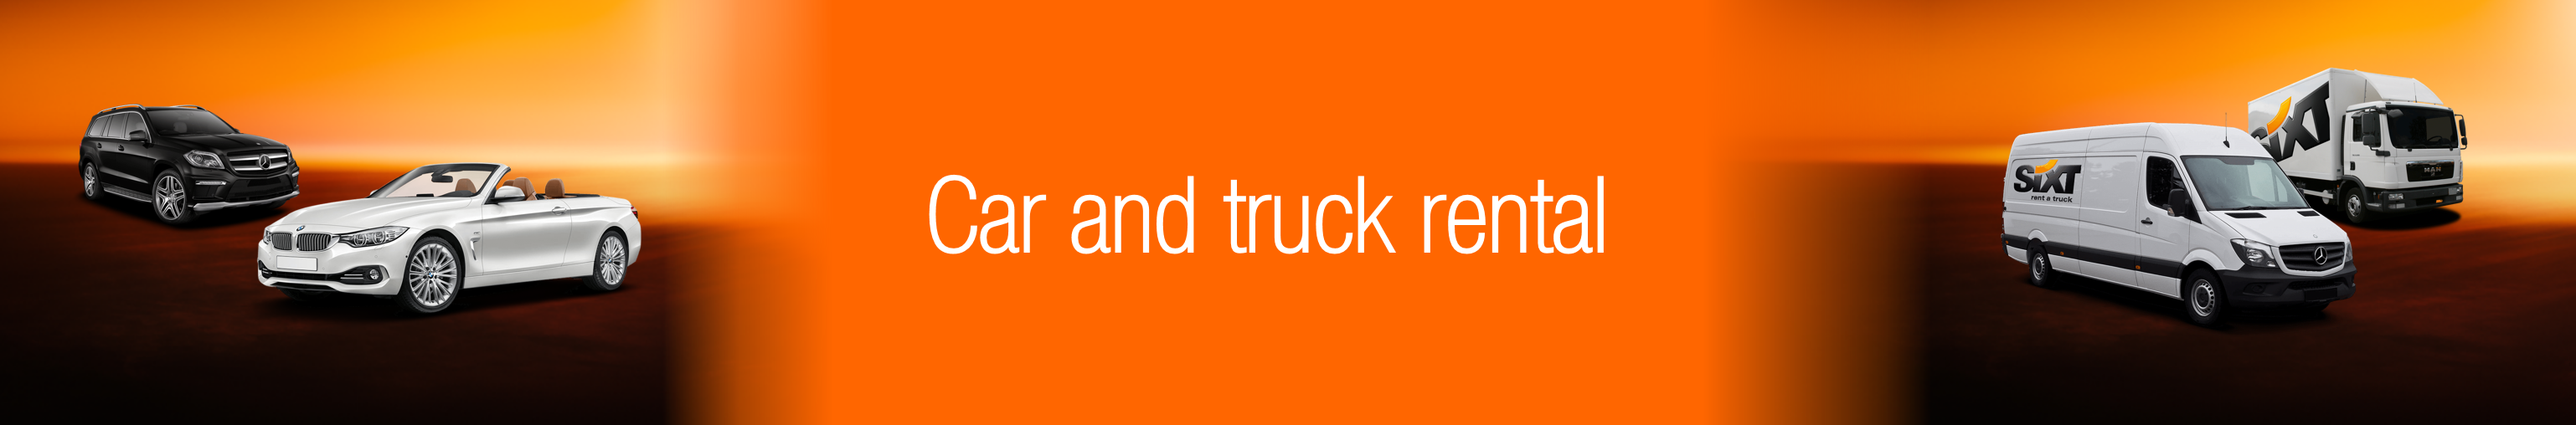 Car and truck rental